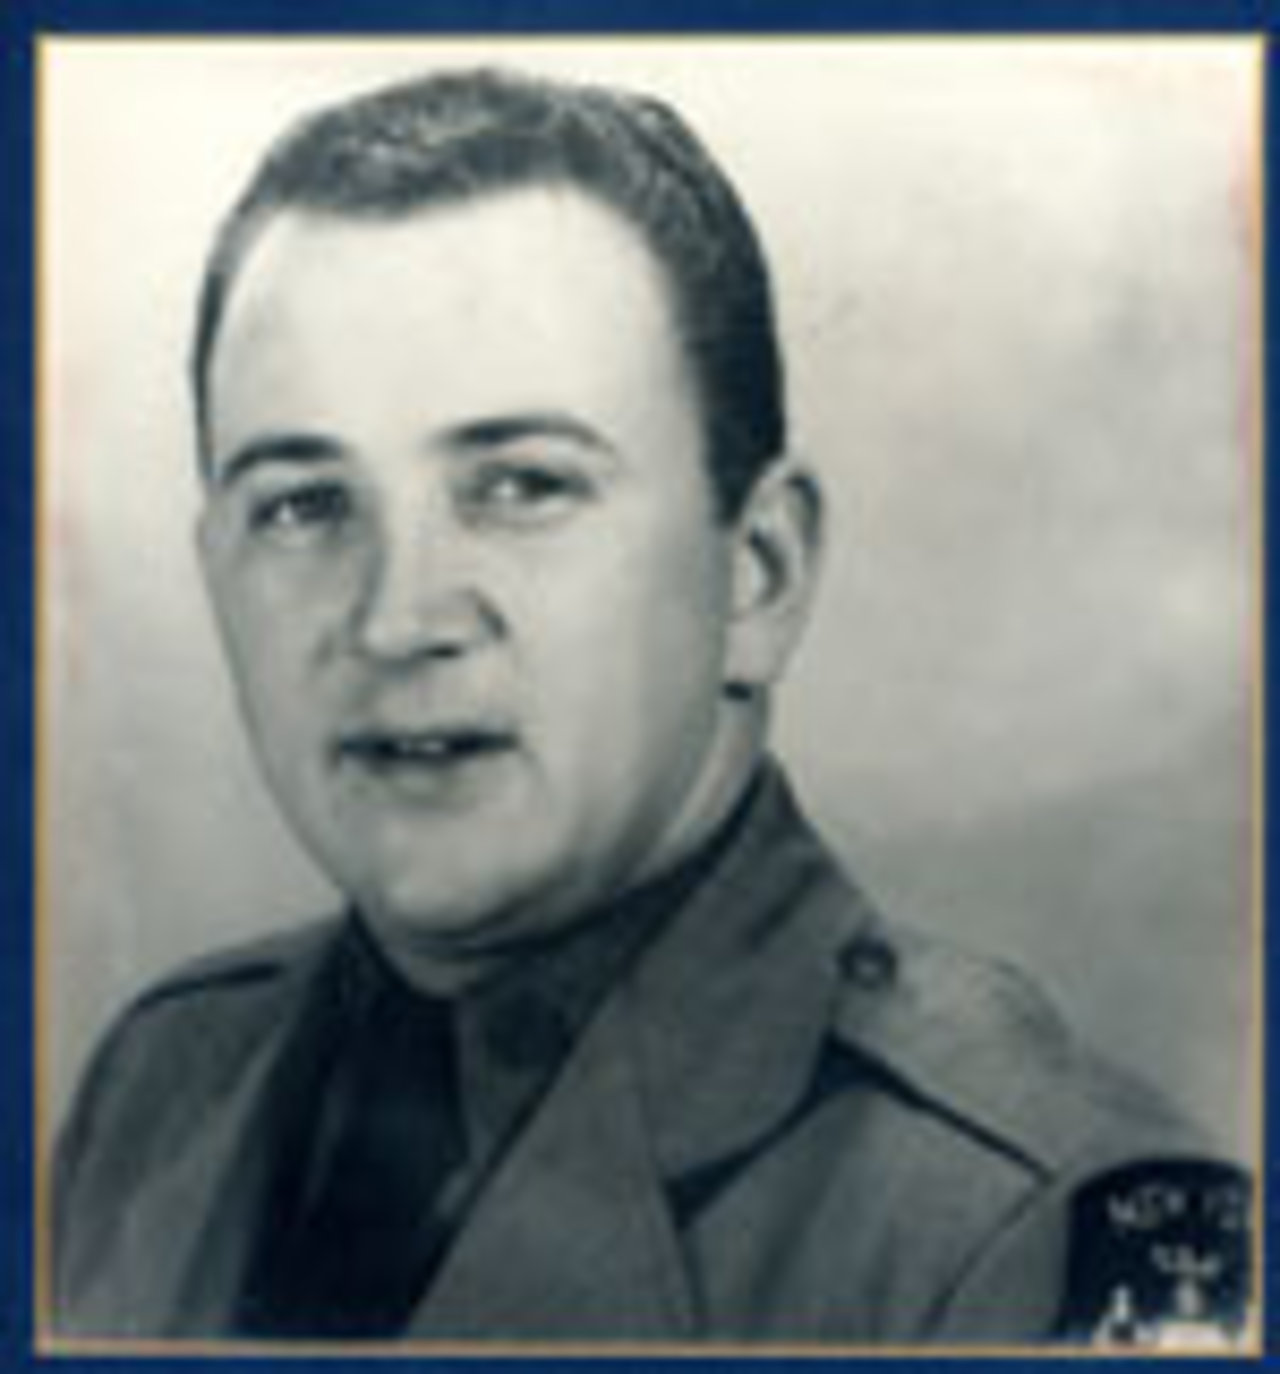 rooper Richard L. Weltz lost his life at age 30 on March 17, 1970 in a one-car accident when his vehicle left the road on Route 219 in Hamburg. He was returning from a pistol match in which he represented the New York State Police. Trooper Weltz had won numerous national and international awards for marksmanship during his assignment to the pistol team.